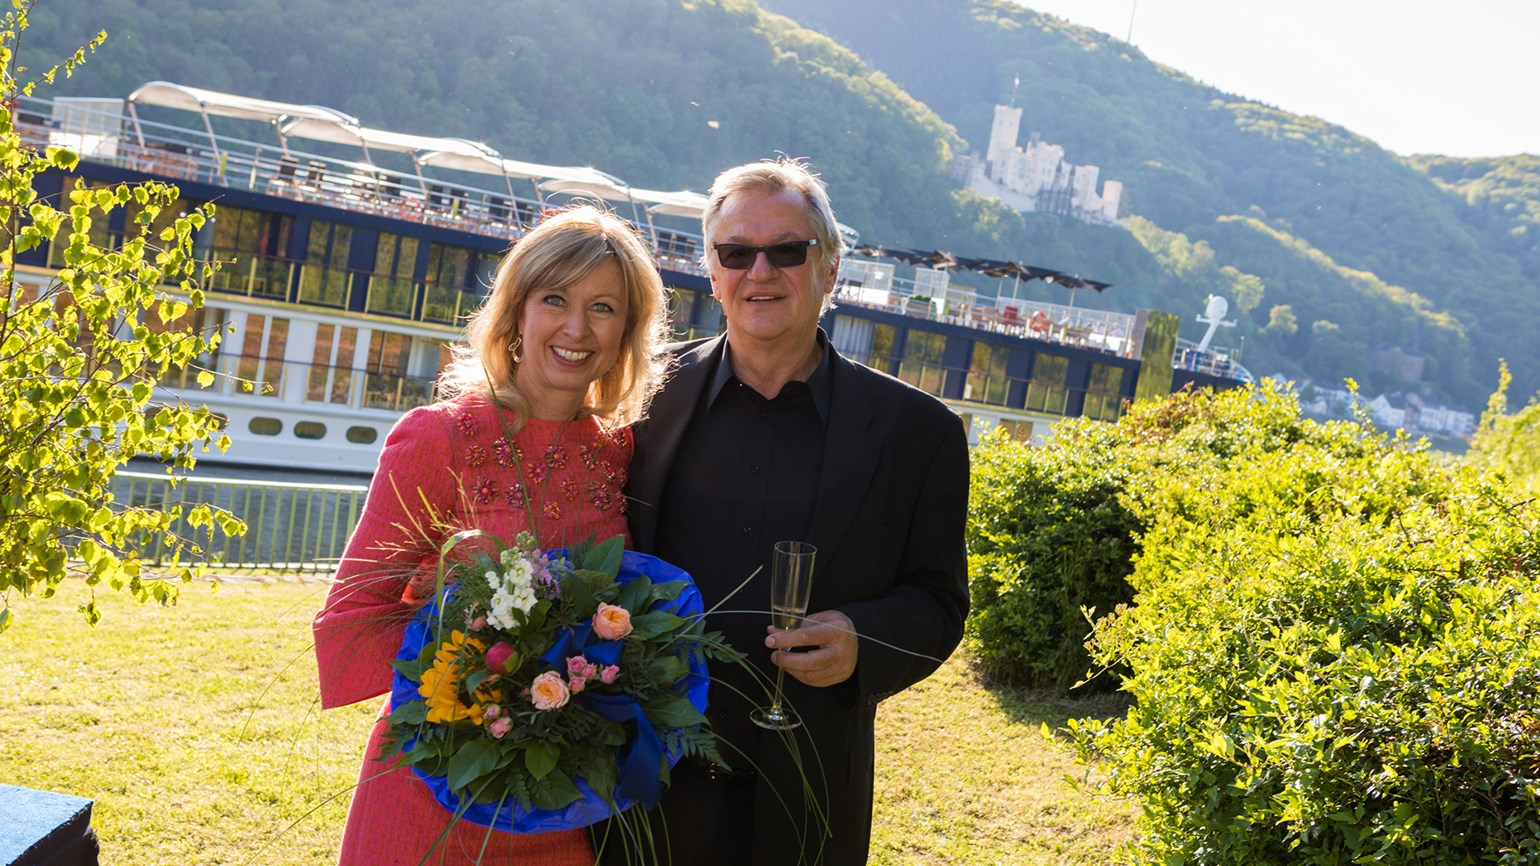 AmaWaterways to host first founder's cruises